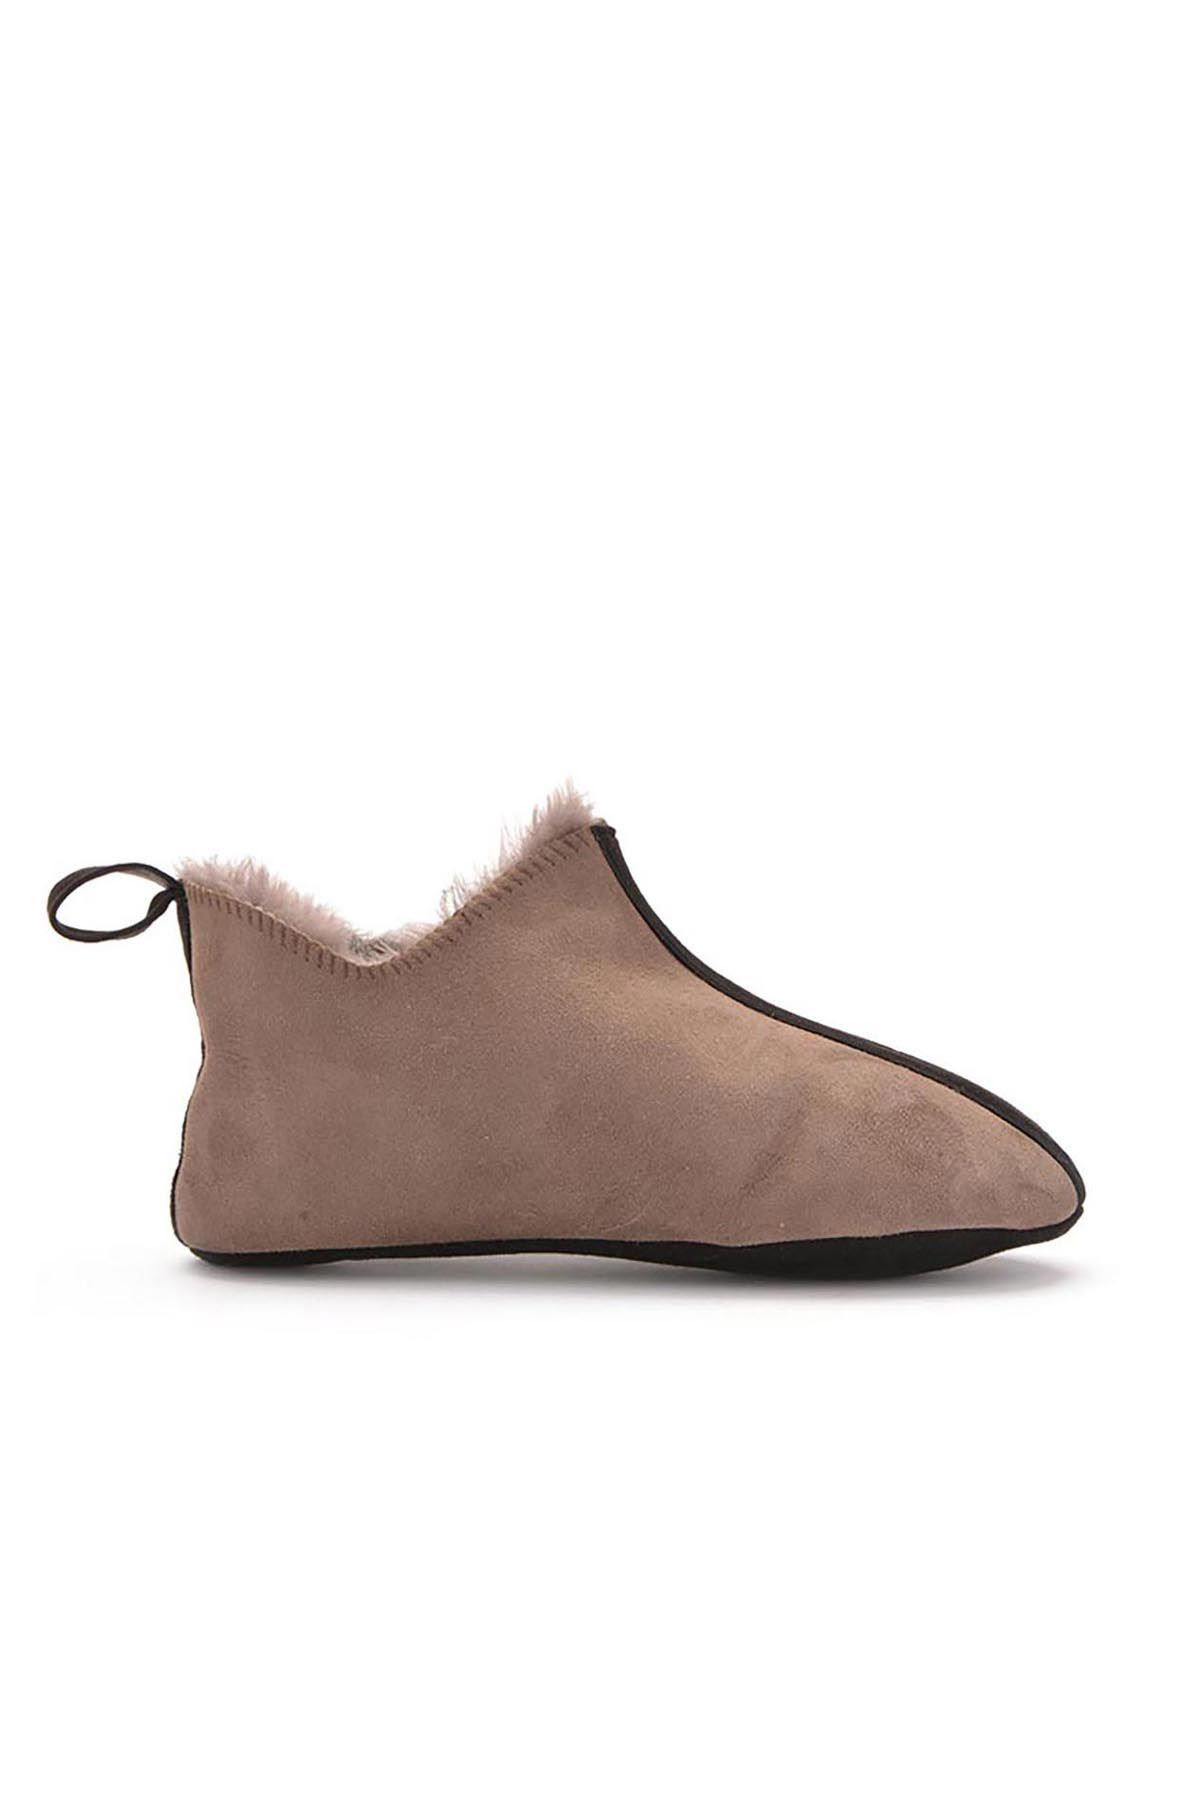 Pegia Kids House-Shoes From Genuine Fur Visone